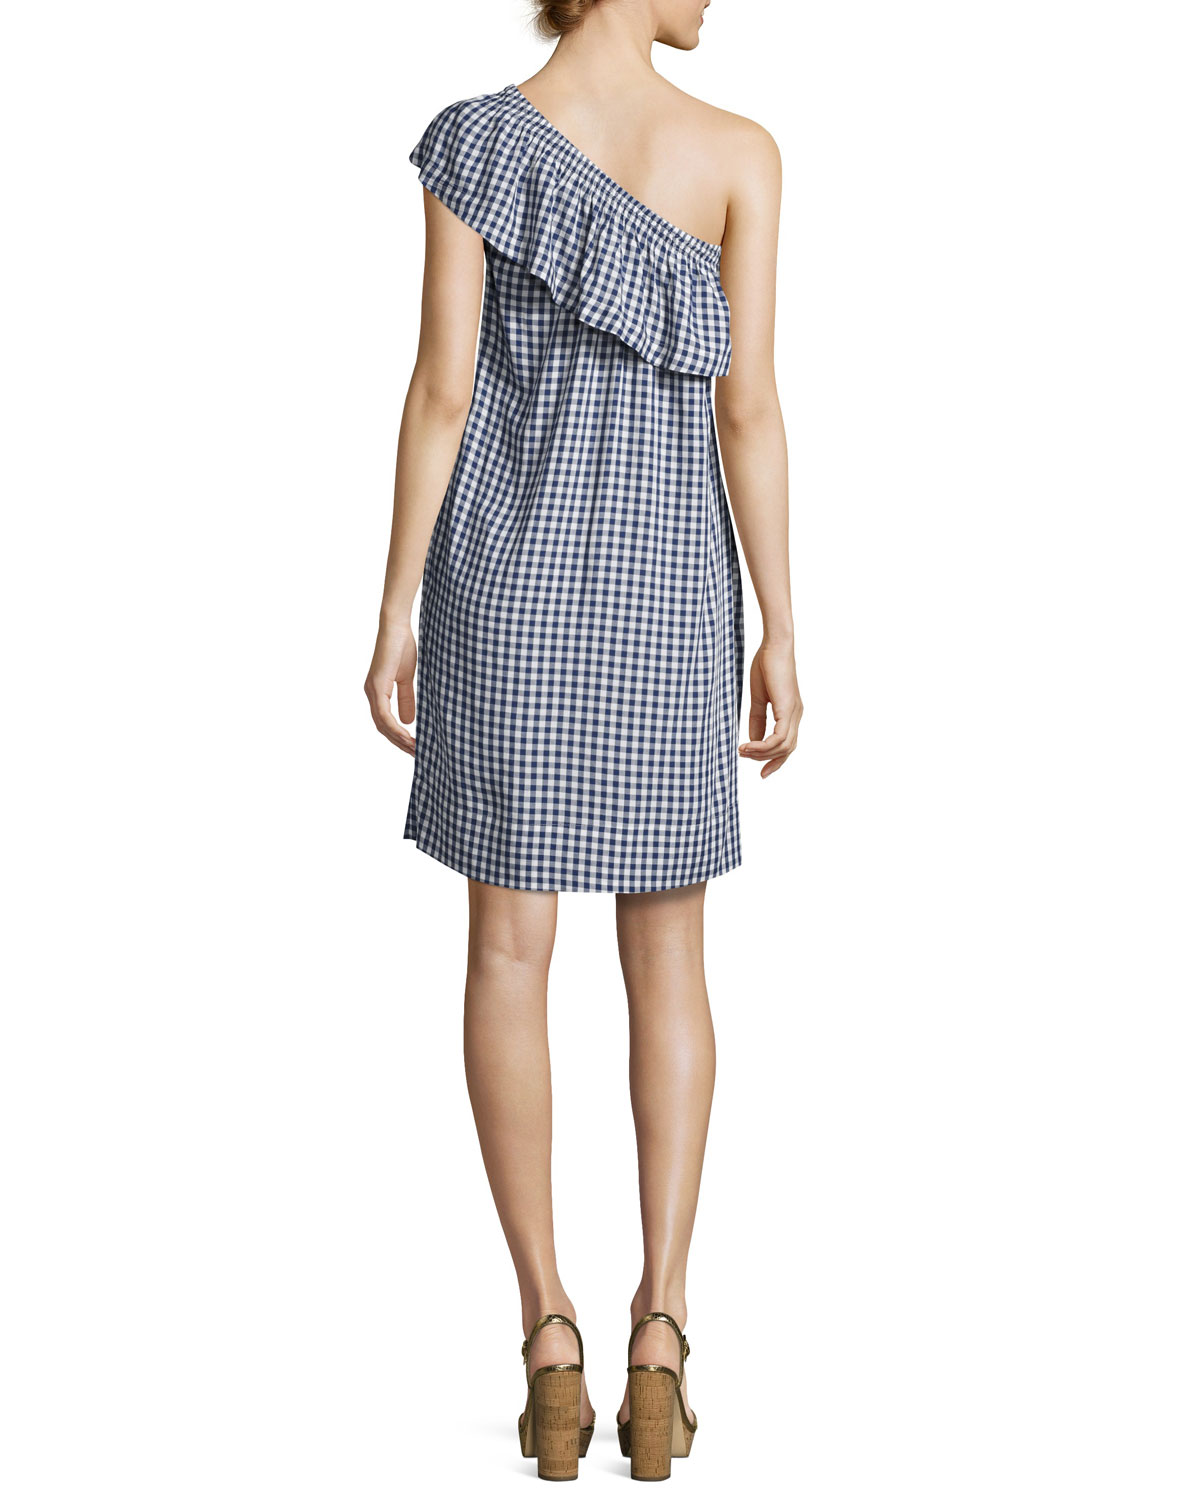 Free Shipping Low Price Flutter-Sleeve Gingham Shift Dress Neiman Marcus Clearance Marketable Sale Store sKbK7